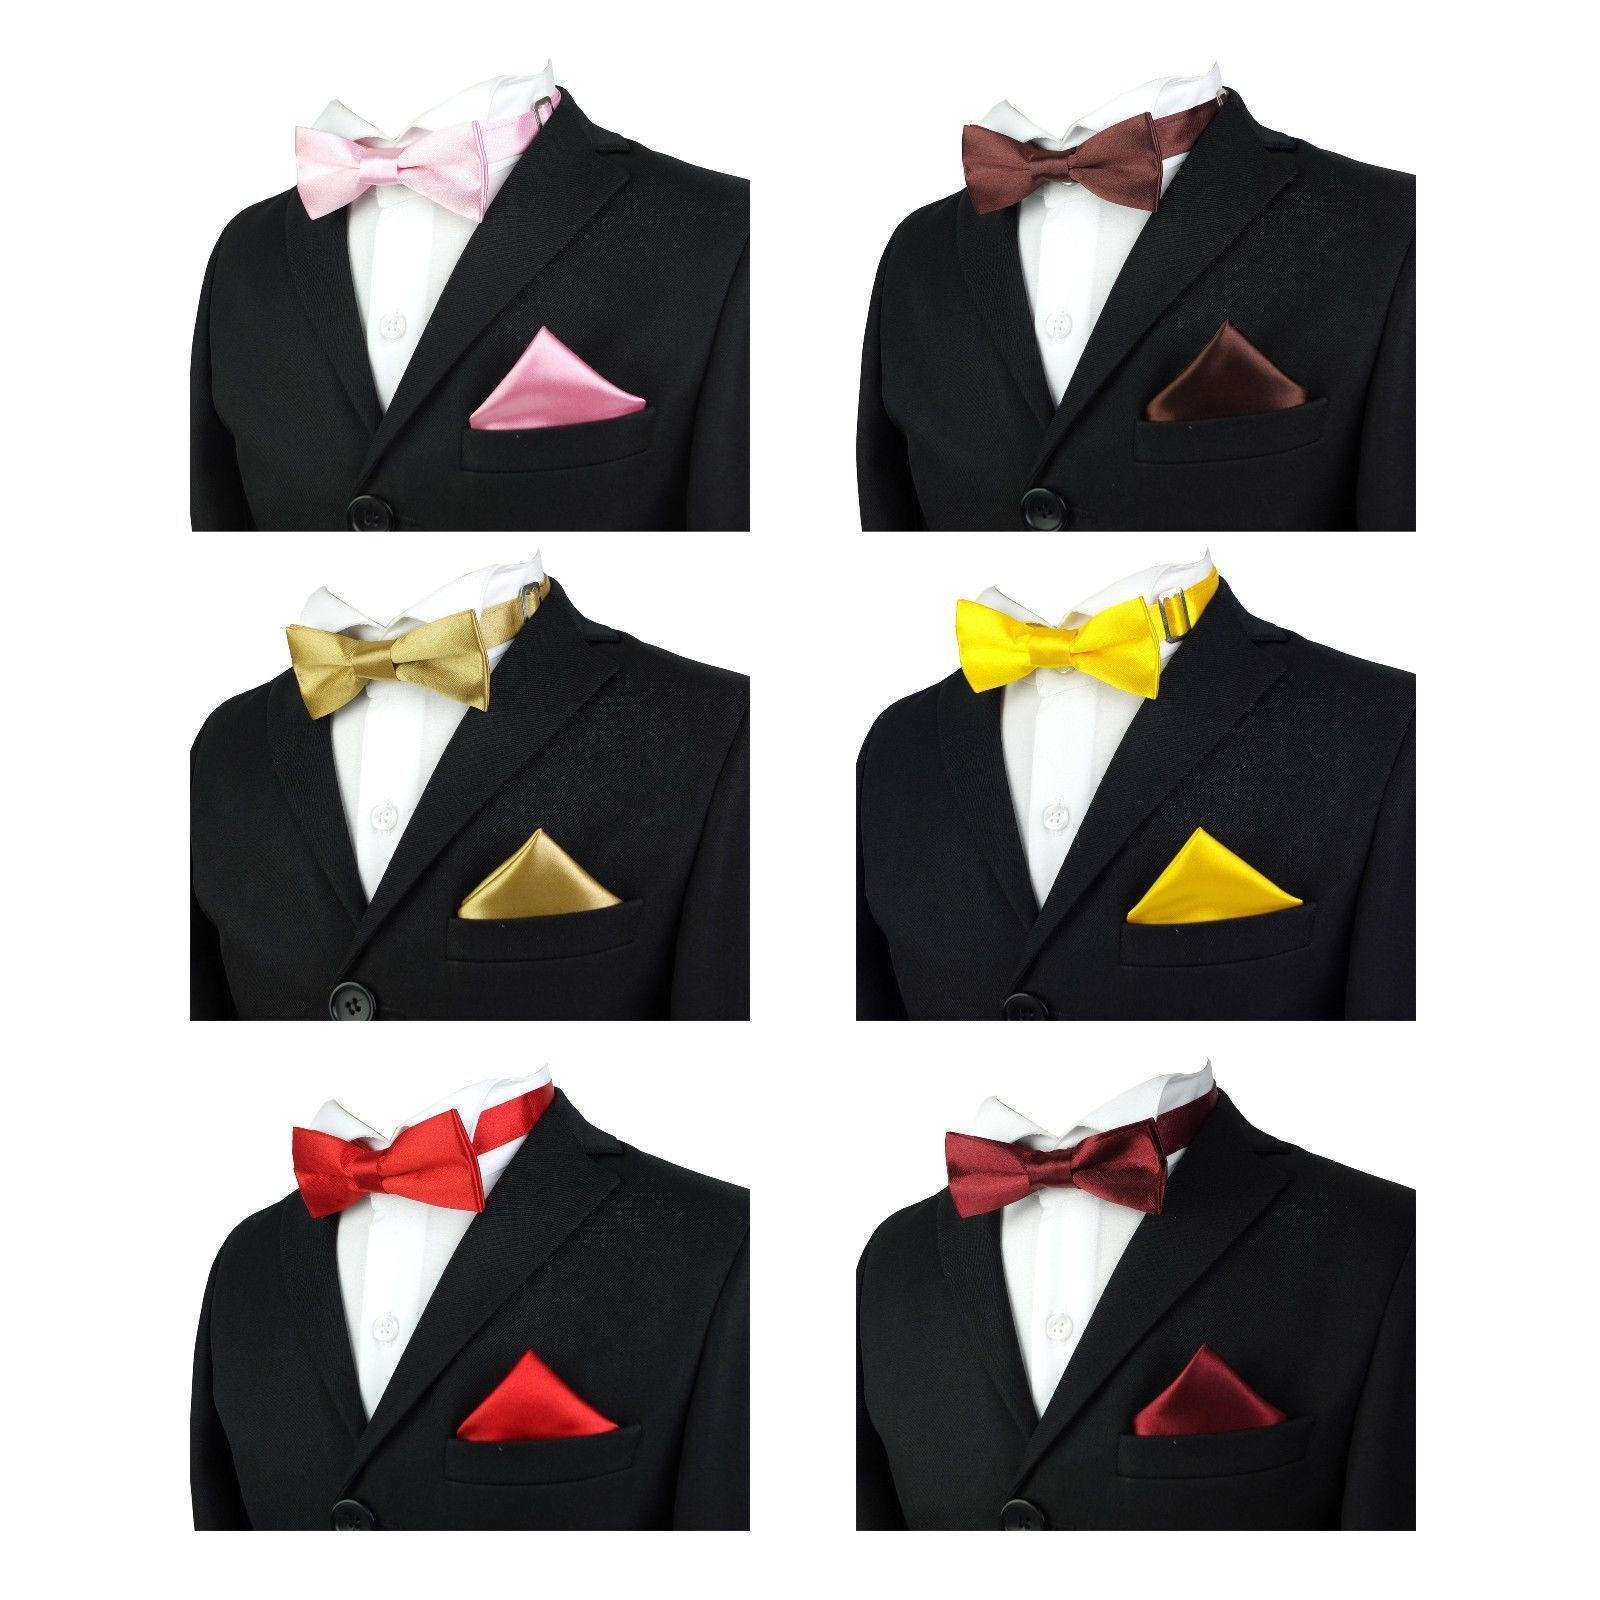 60447057c68cb Details about Boys Satin Plain Bow Tie Set Kids Pre-tied Adjustable Bow  Ties Pocket Square